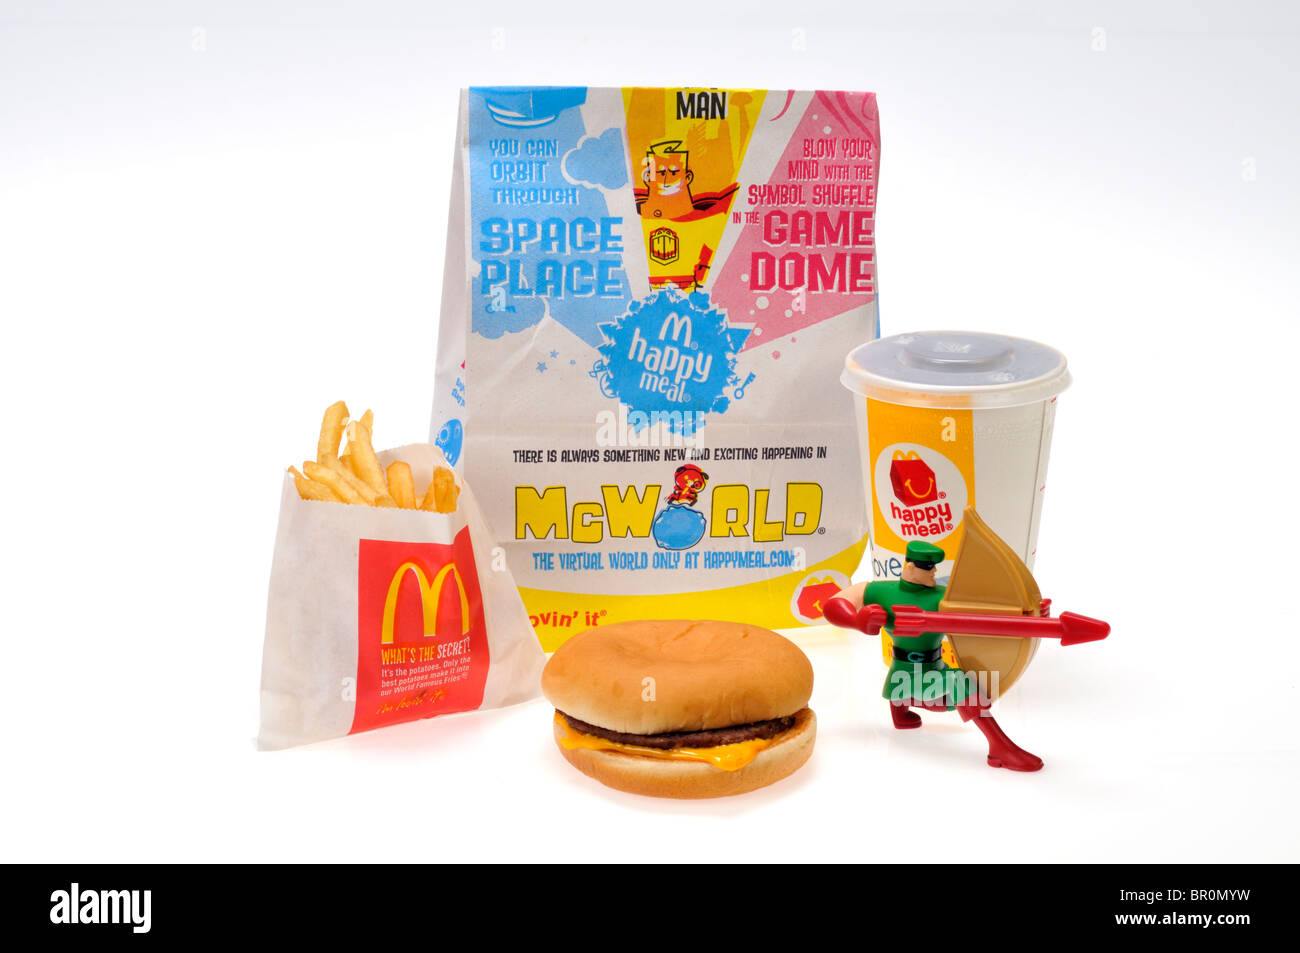 Mcdonalds happy meal with robin hood toy on white background stock mcdonalds happy meal with robin hood toy on white background cutout usa freerunsca Images